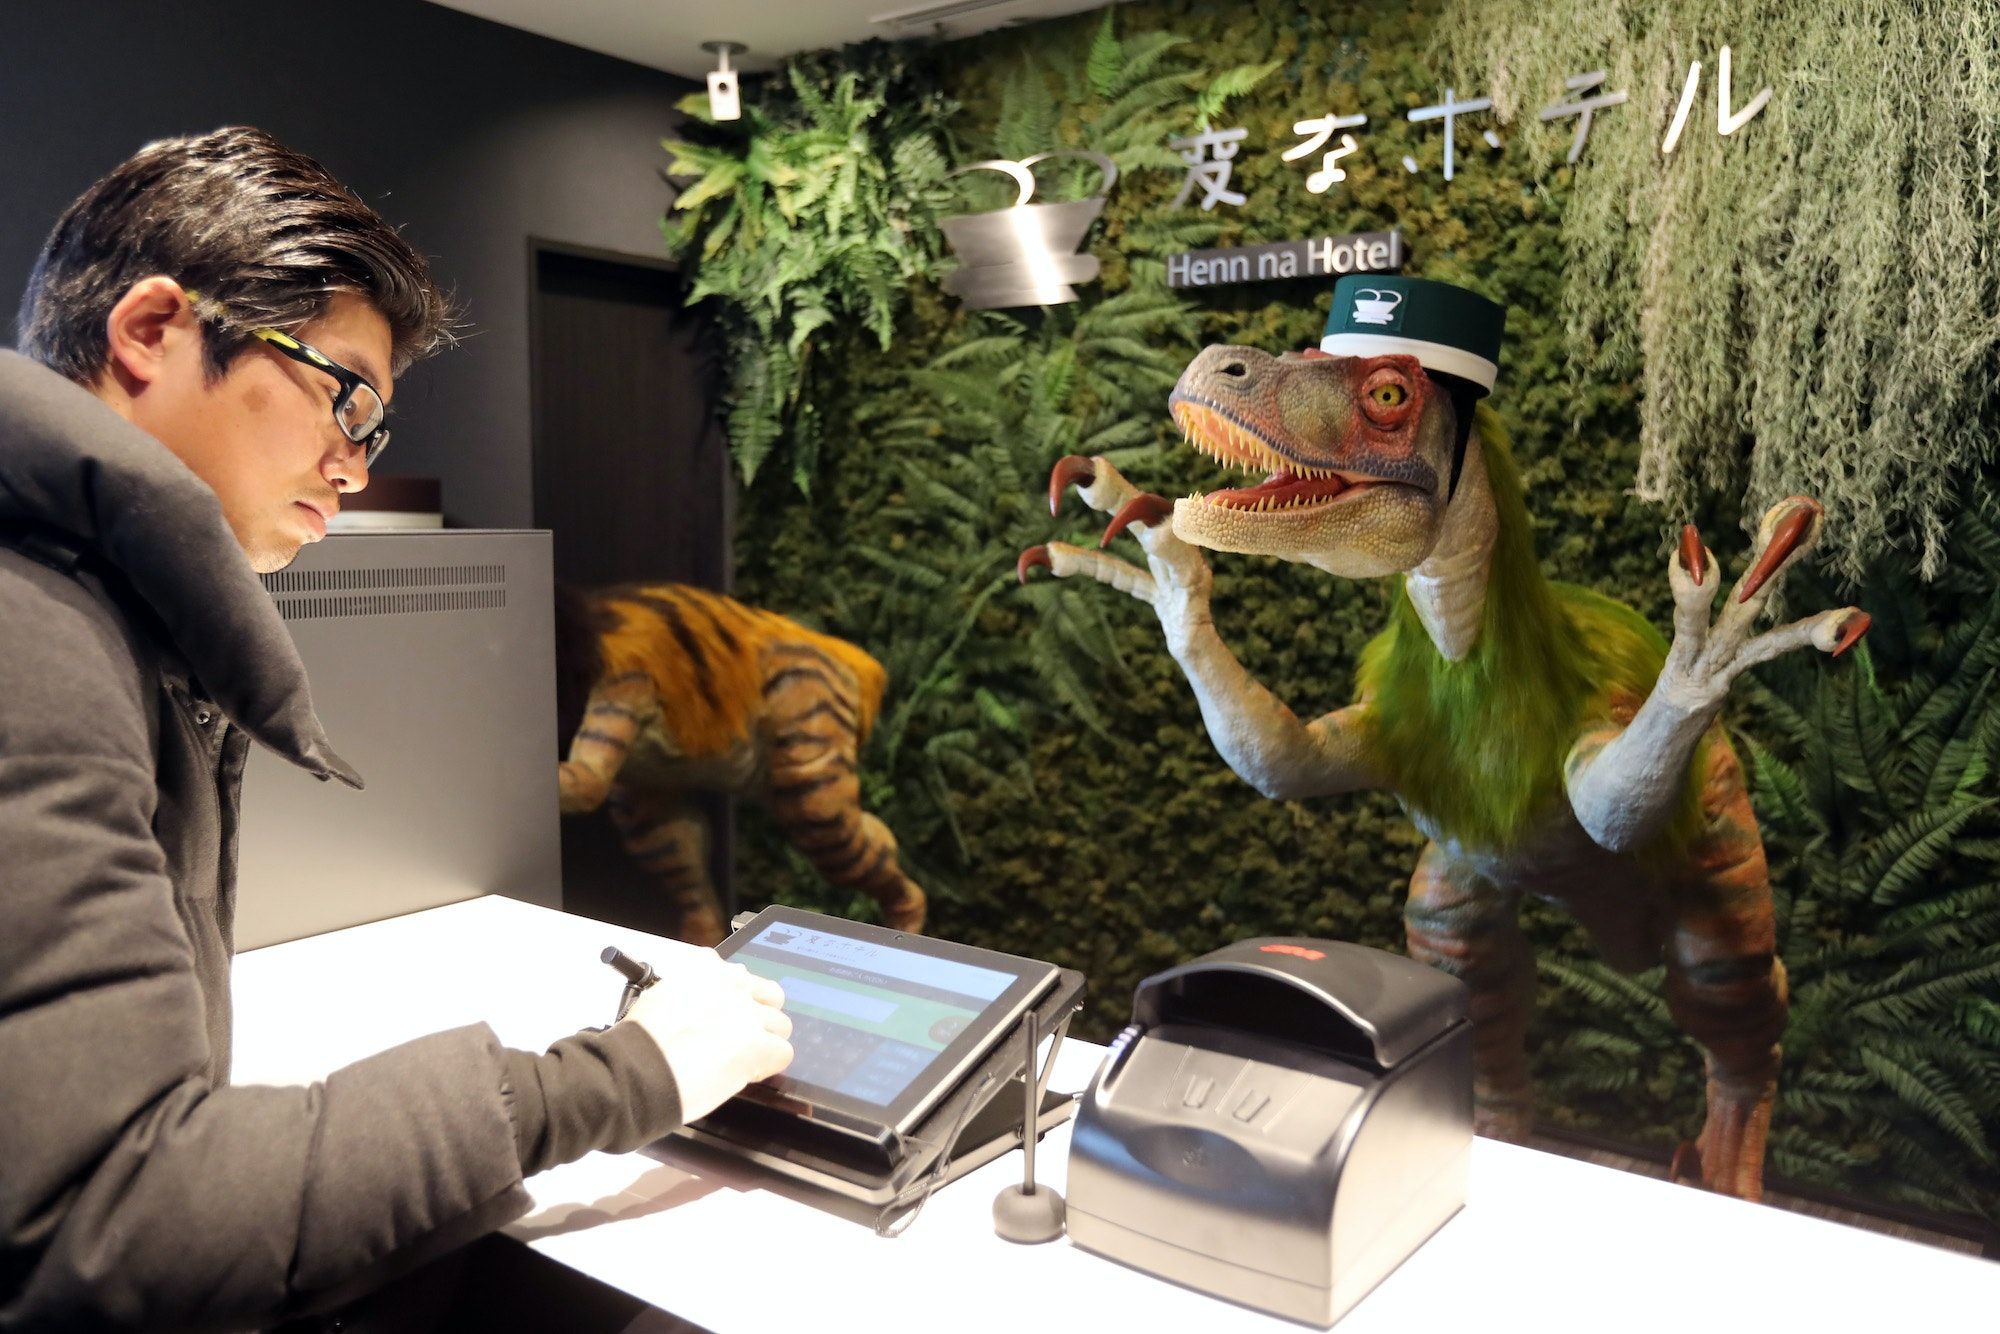 A dinosaur robot greets a guest at the Henn na Hotel, Japan